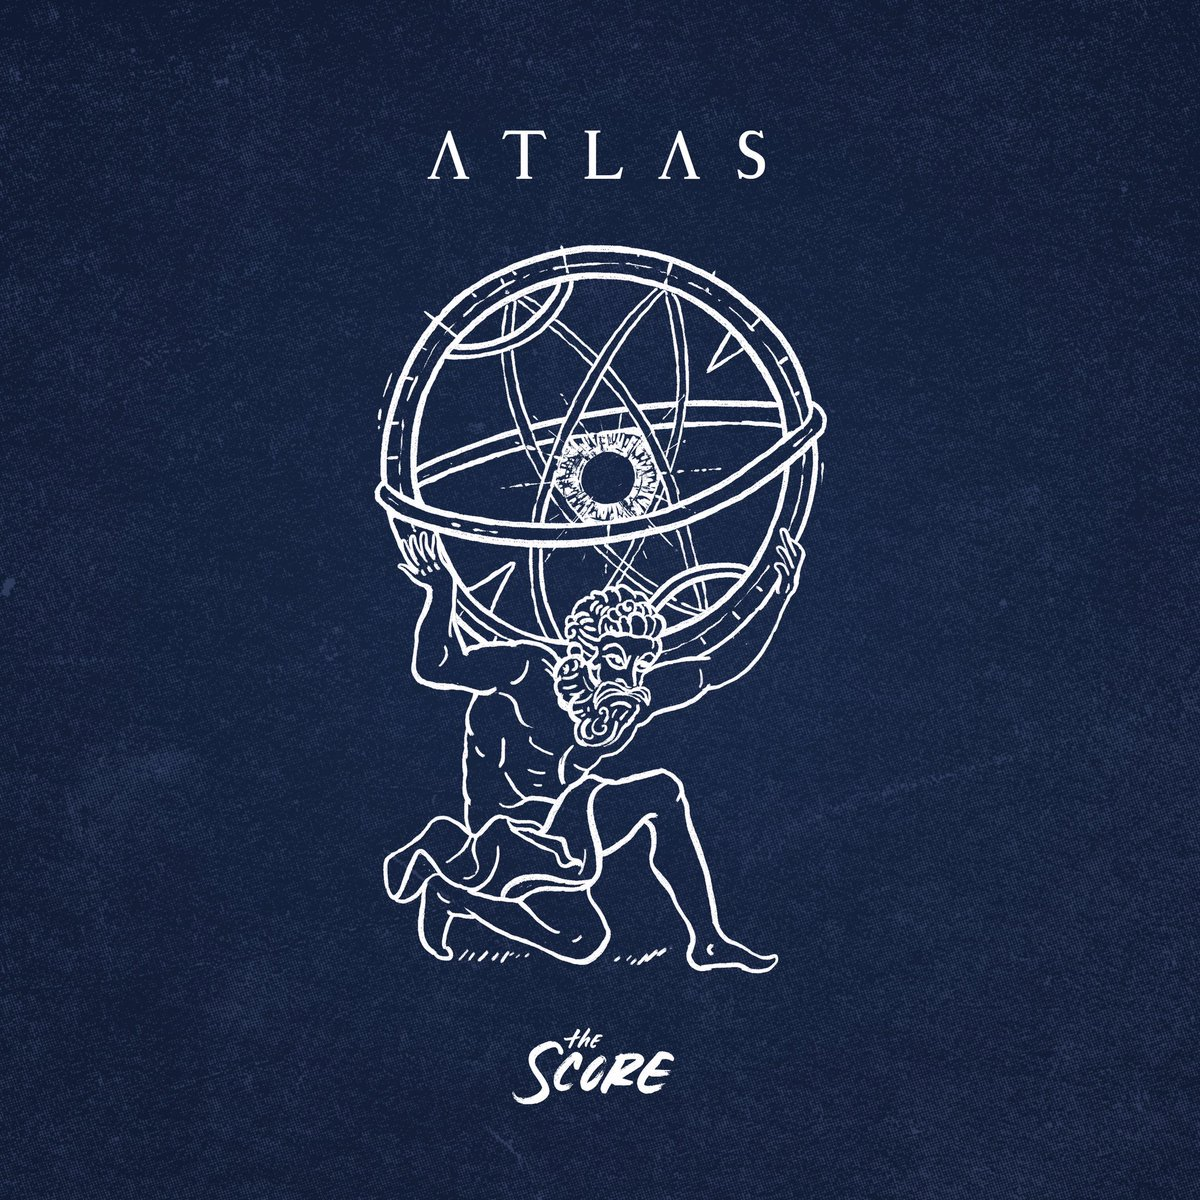 Check out #ATLAS, the new album from @thescoremusic 🎶  >>> ht...